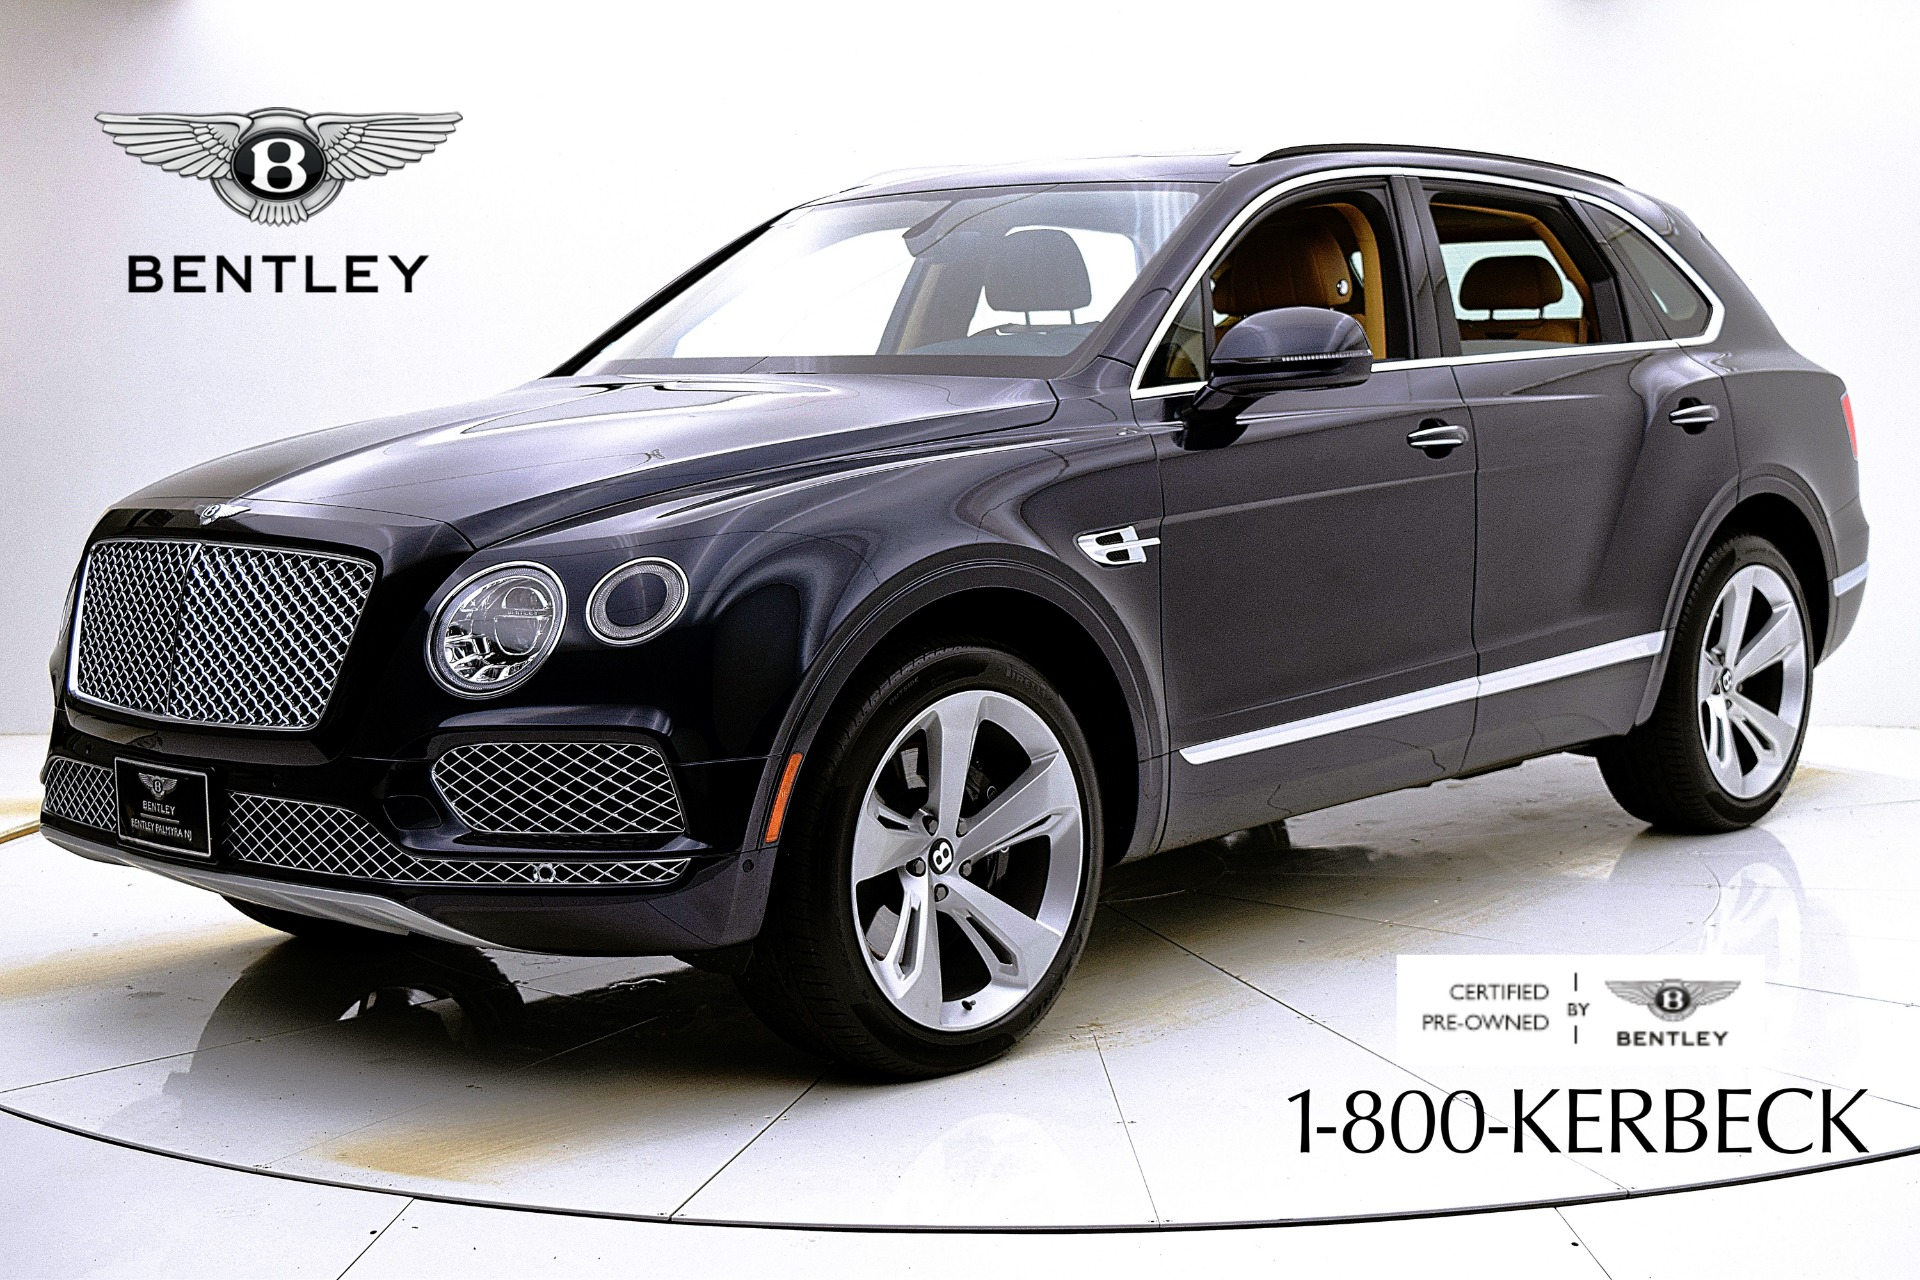 Used 2019 Bentley Bentayga V8 for sale $169,880 at Bentley Palmyra N.J. in Palmyra NJ 08065 2